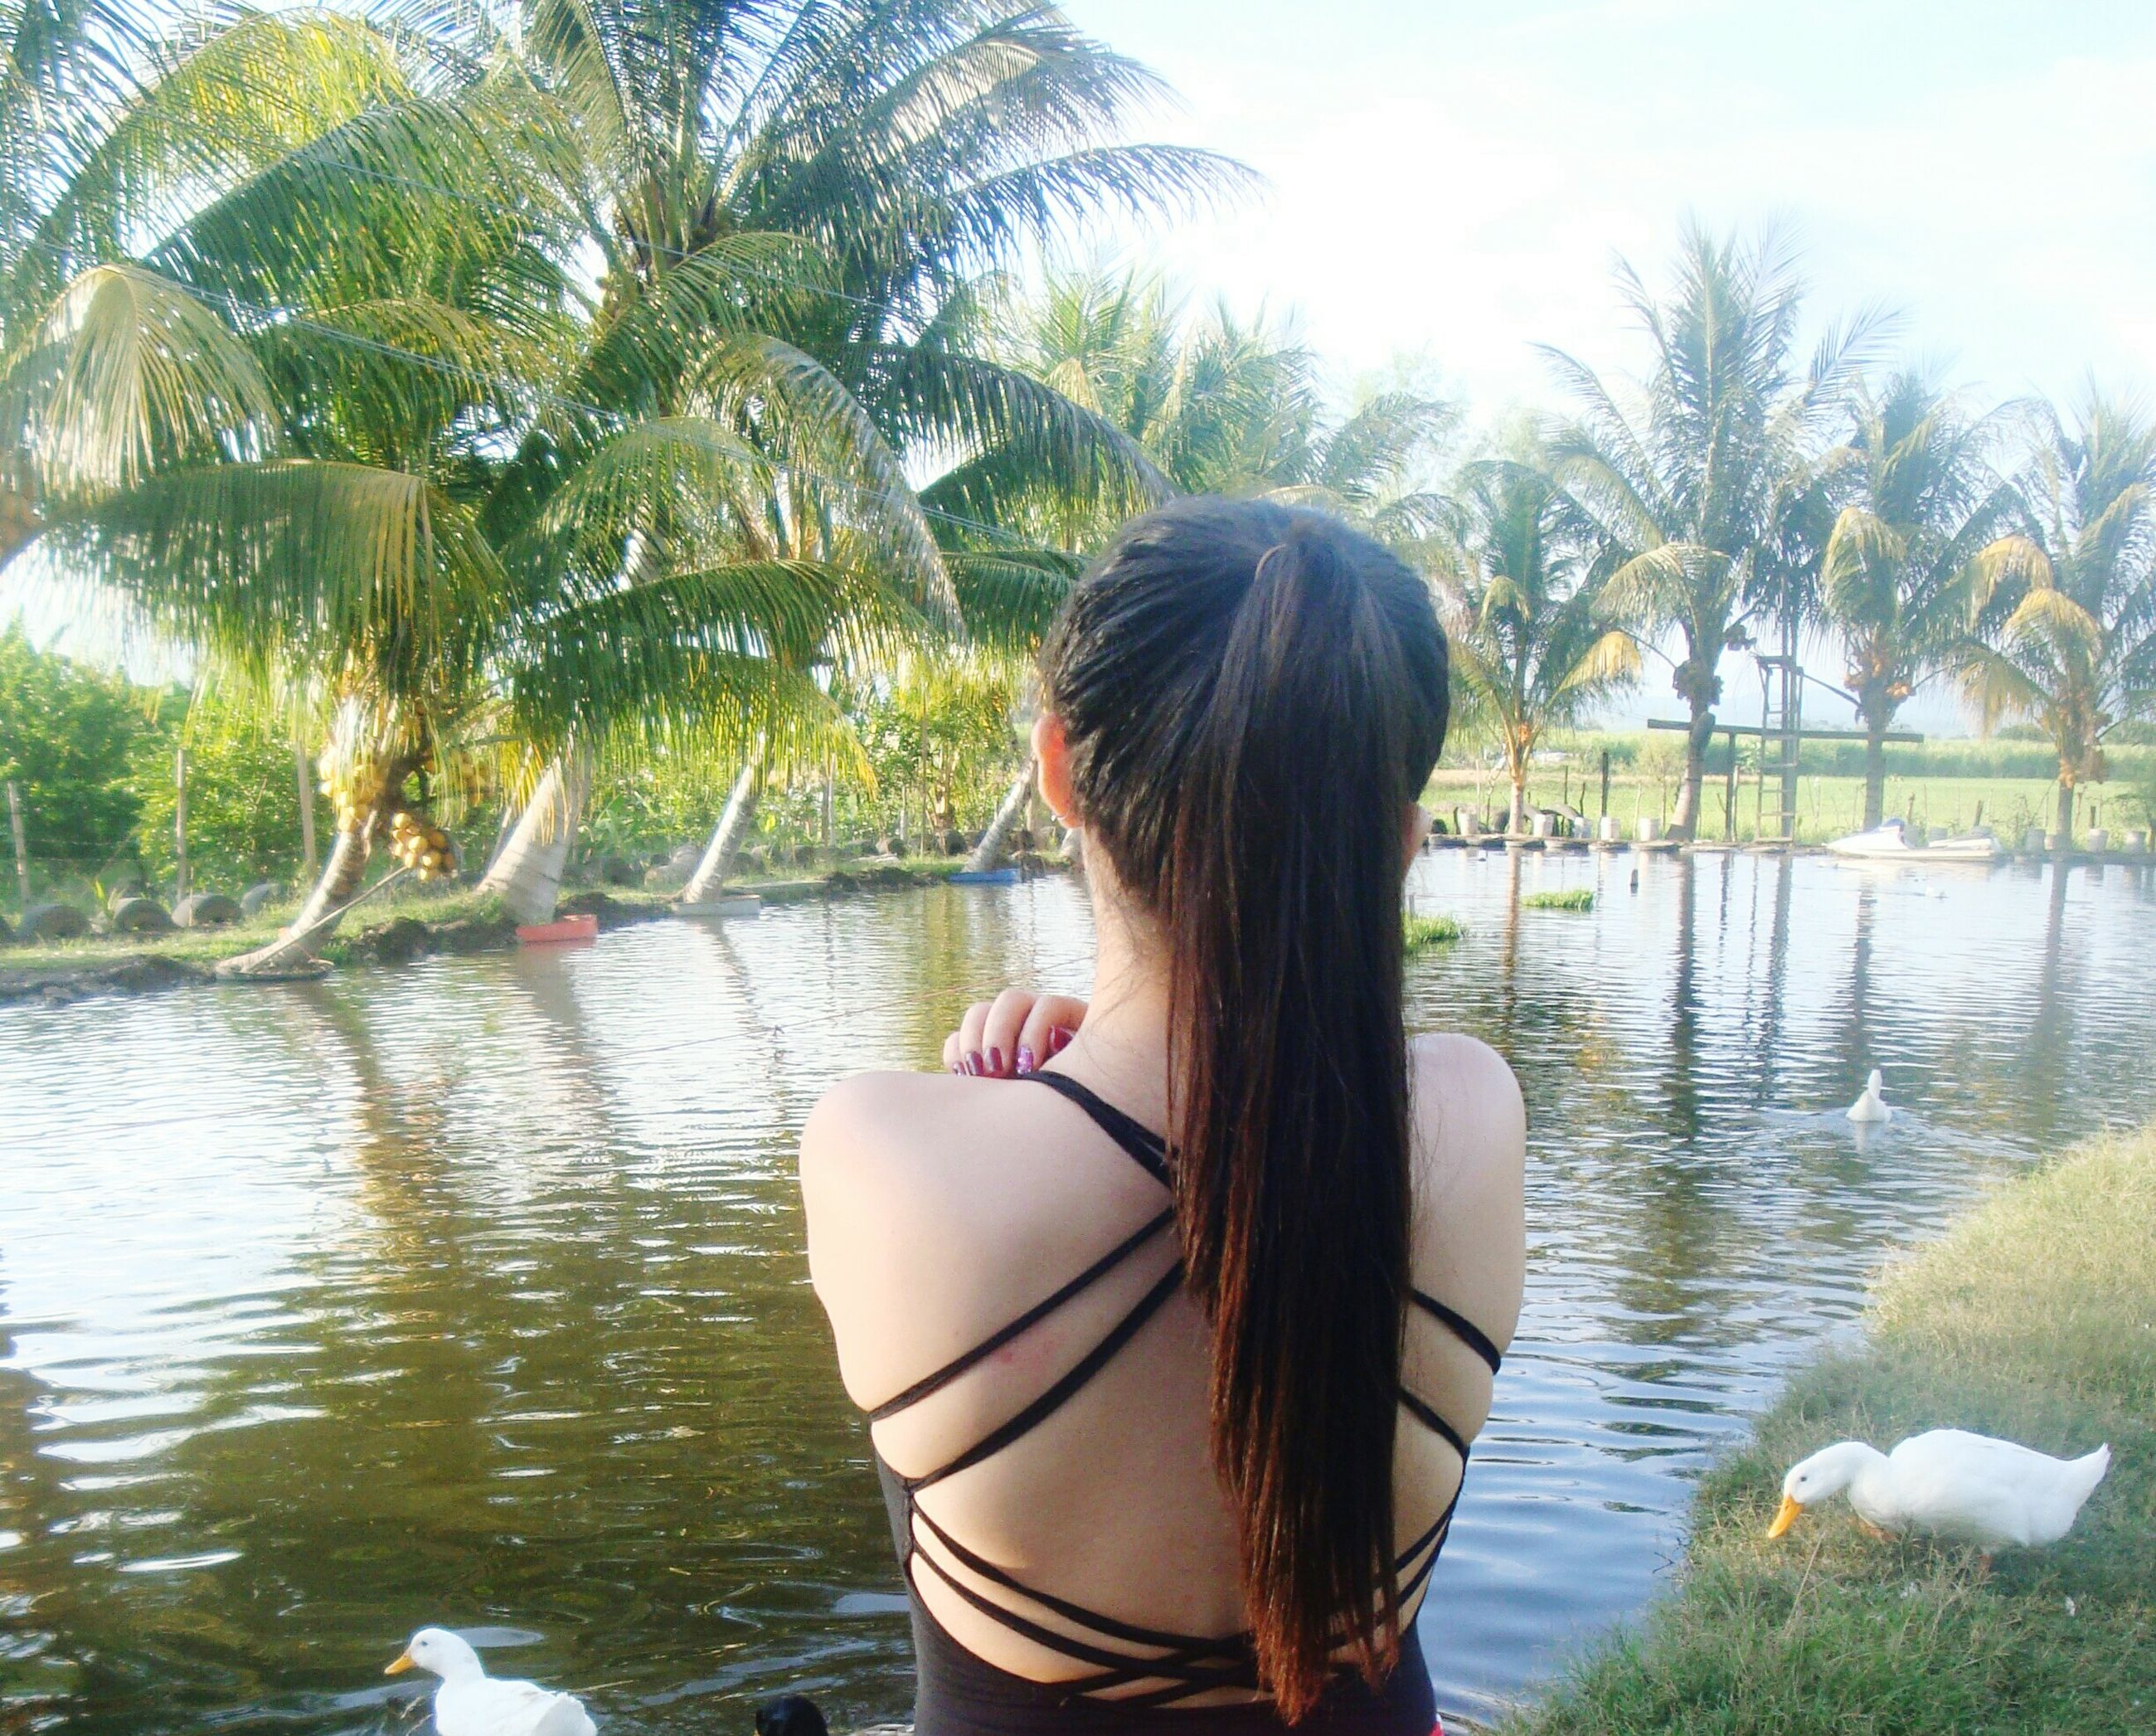 tree, real people, water, waist up, one person, lifestyles, nature, vacations, day, palm tree, beauty in nature, young adult, scenics, leisure activity, sea, outdoors, young women, sky, adults only, people, adult